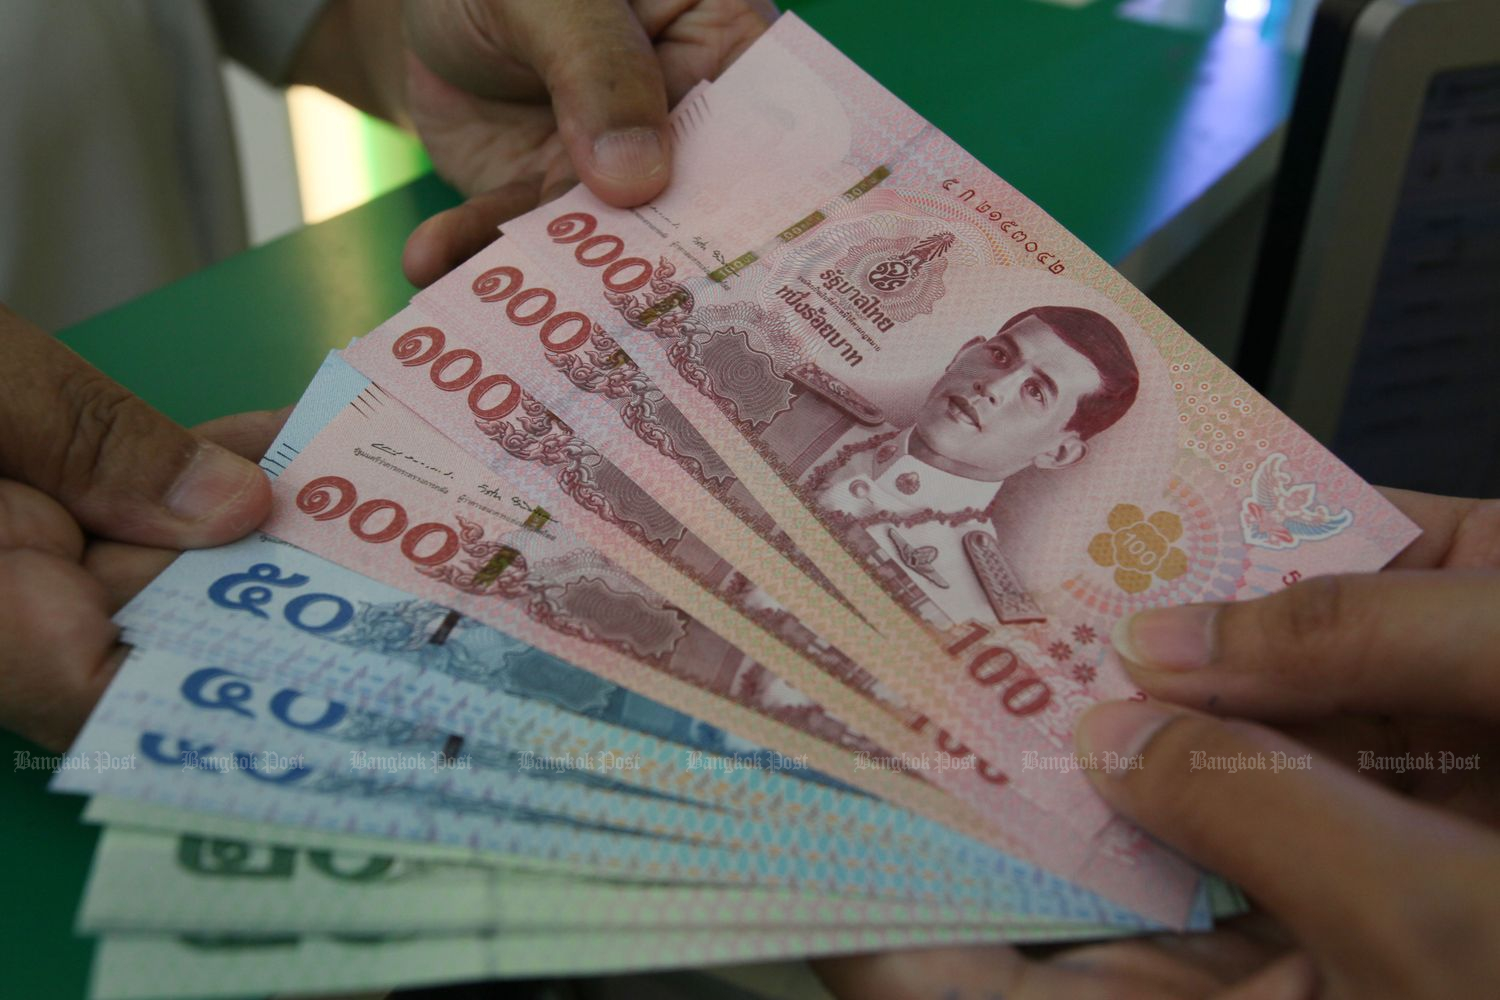 The baht should appreciate towards the year-end as rate cuts by the Federal Reserve will weaken the dollar, according to Krungthai Bank. (Bangkok Post photo)